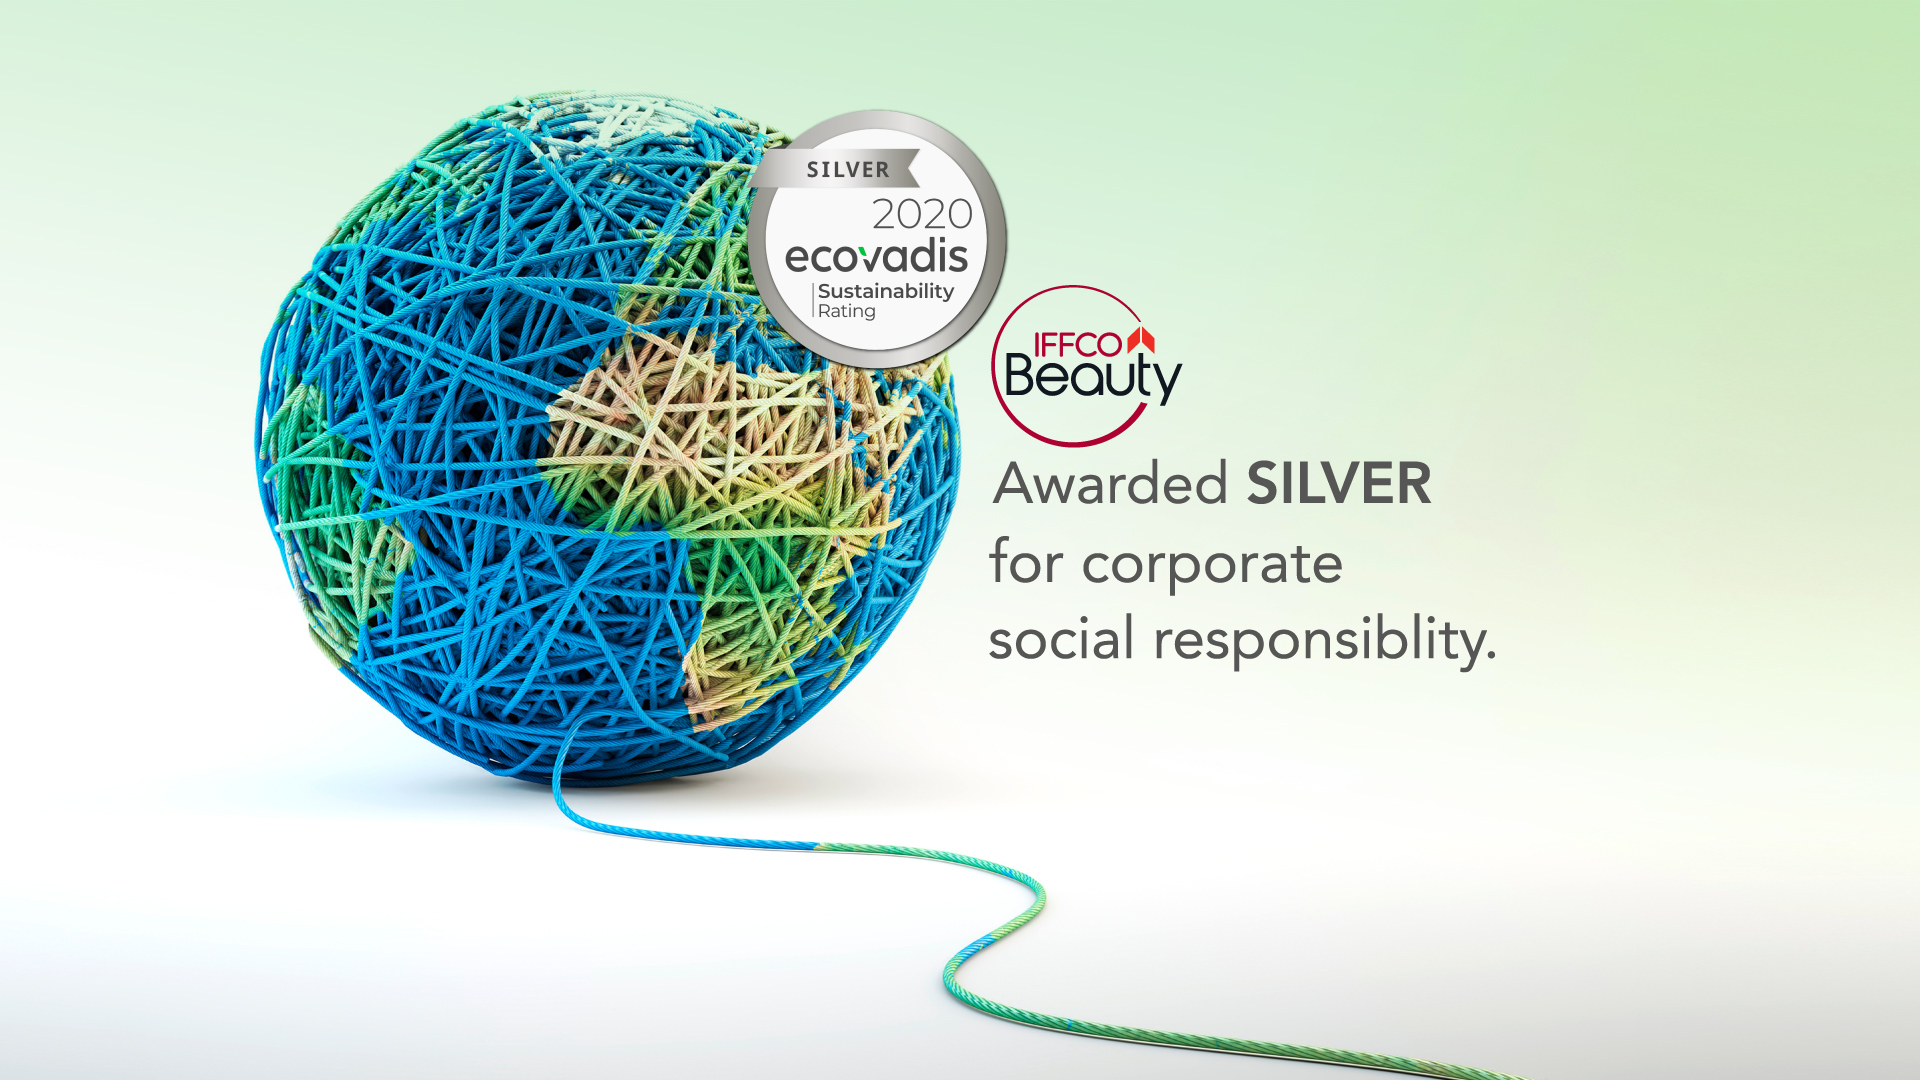 IFFCO BEAUTY wins SILVER Recognition Level for Sustainability